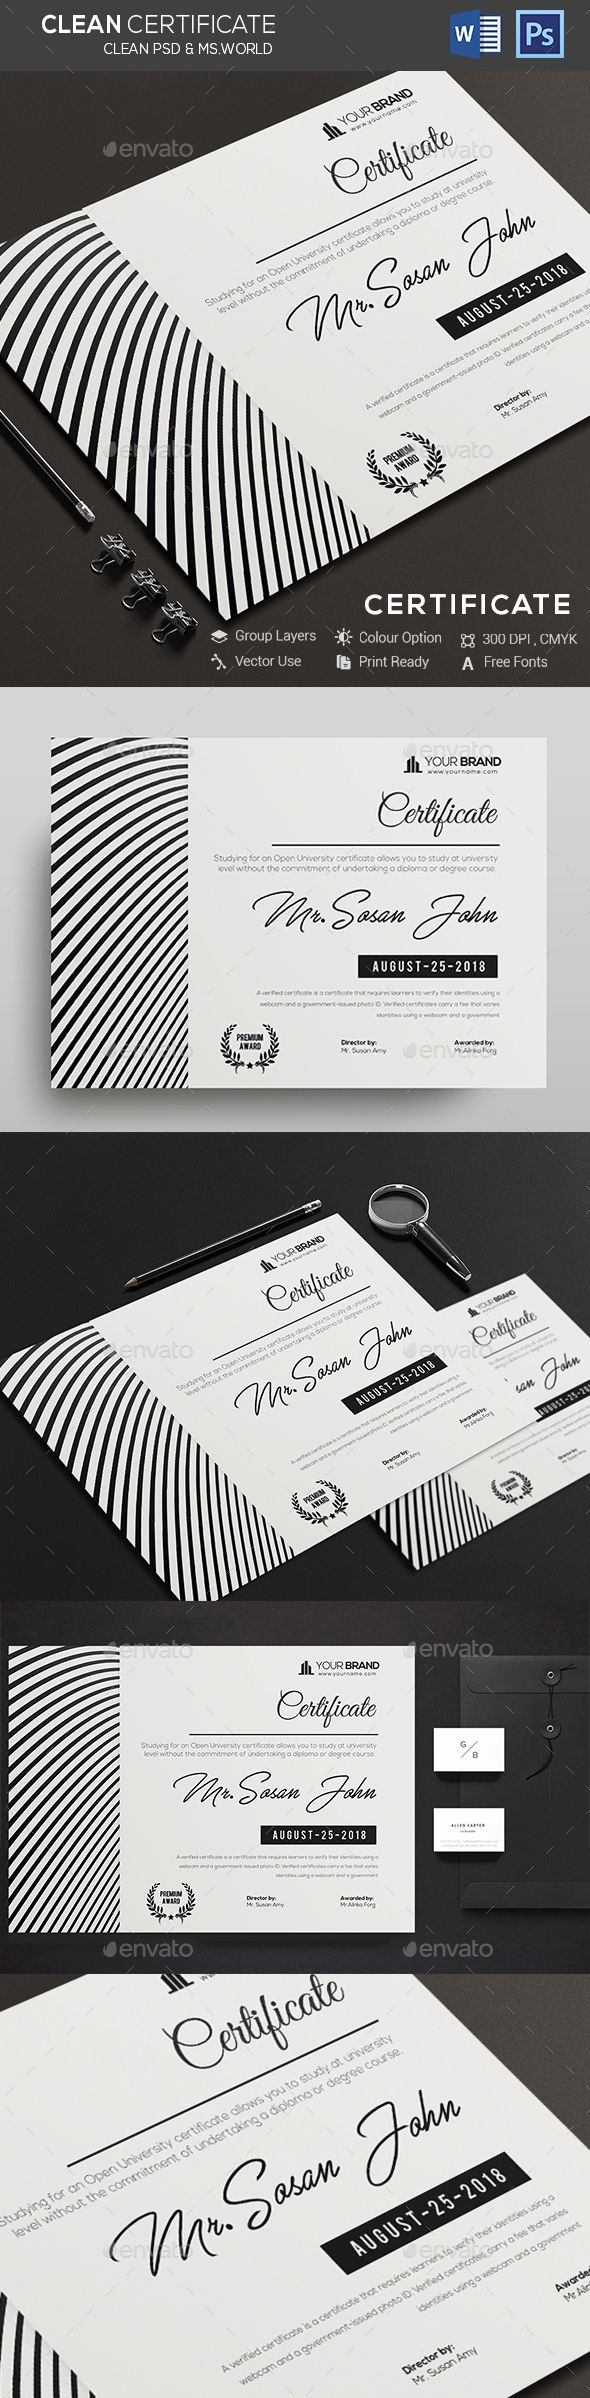 Certificate #print certificate #certificate  • Download here → https://graphicriver.net/item/certificate/20486356?ref=pxcr